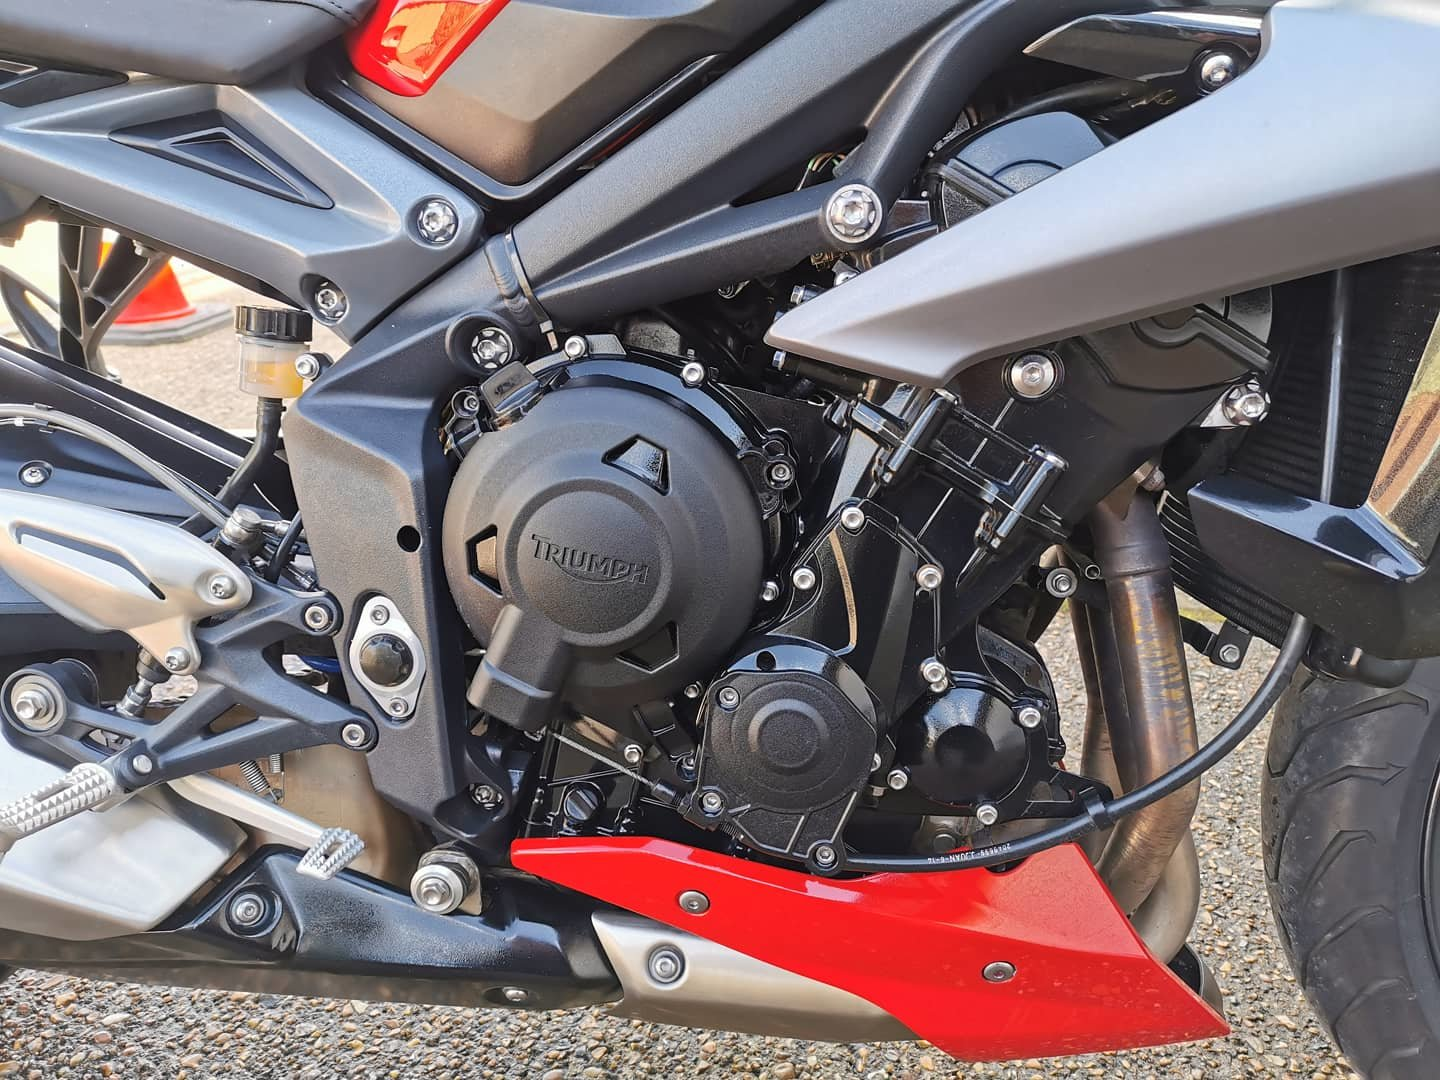 2015-64 Triumph Street triple 675 ABS *low miles* For Sale (picture 4 of 10)